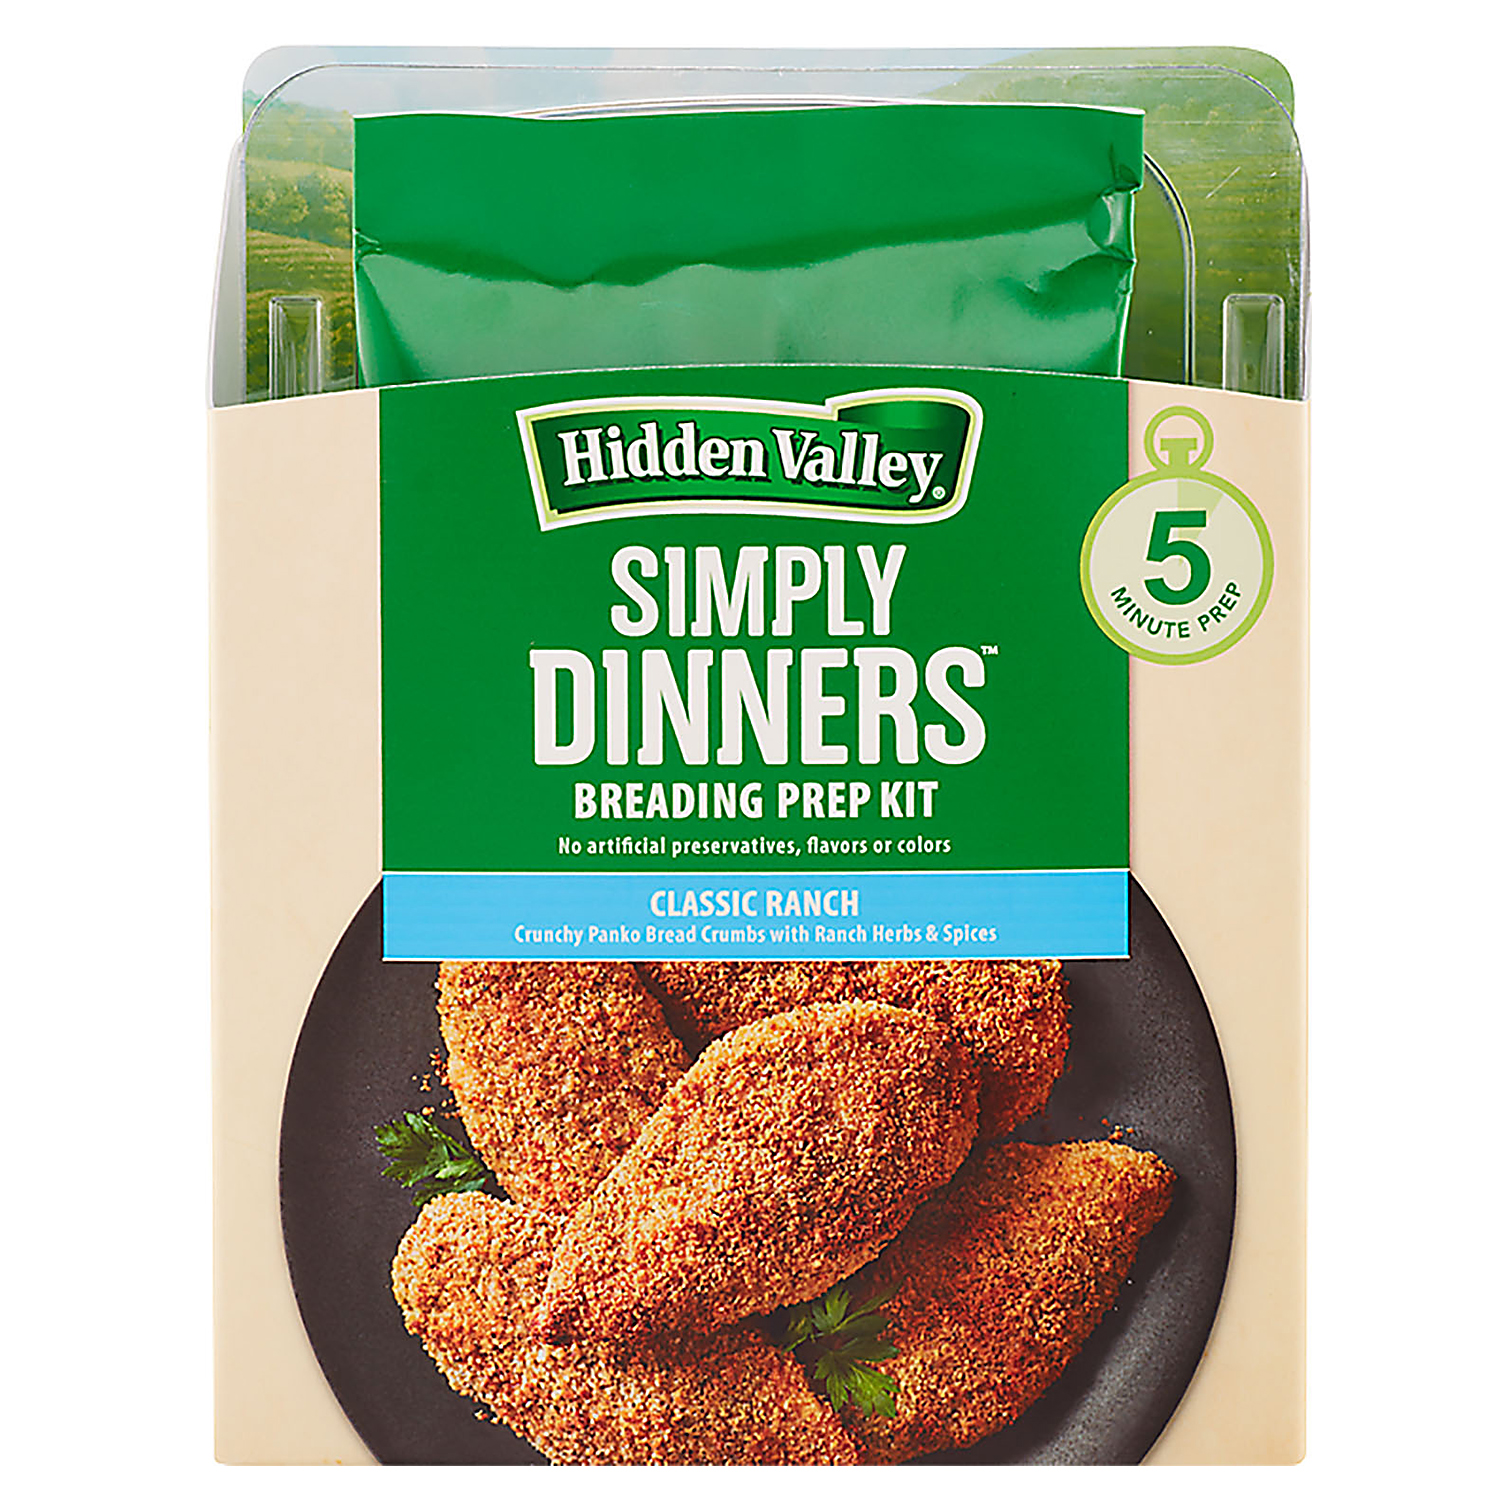 Hidden Valley Simply Dinners Classic Ranch Breading Prep Kit box